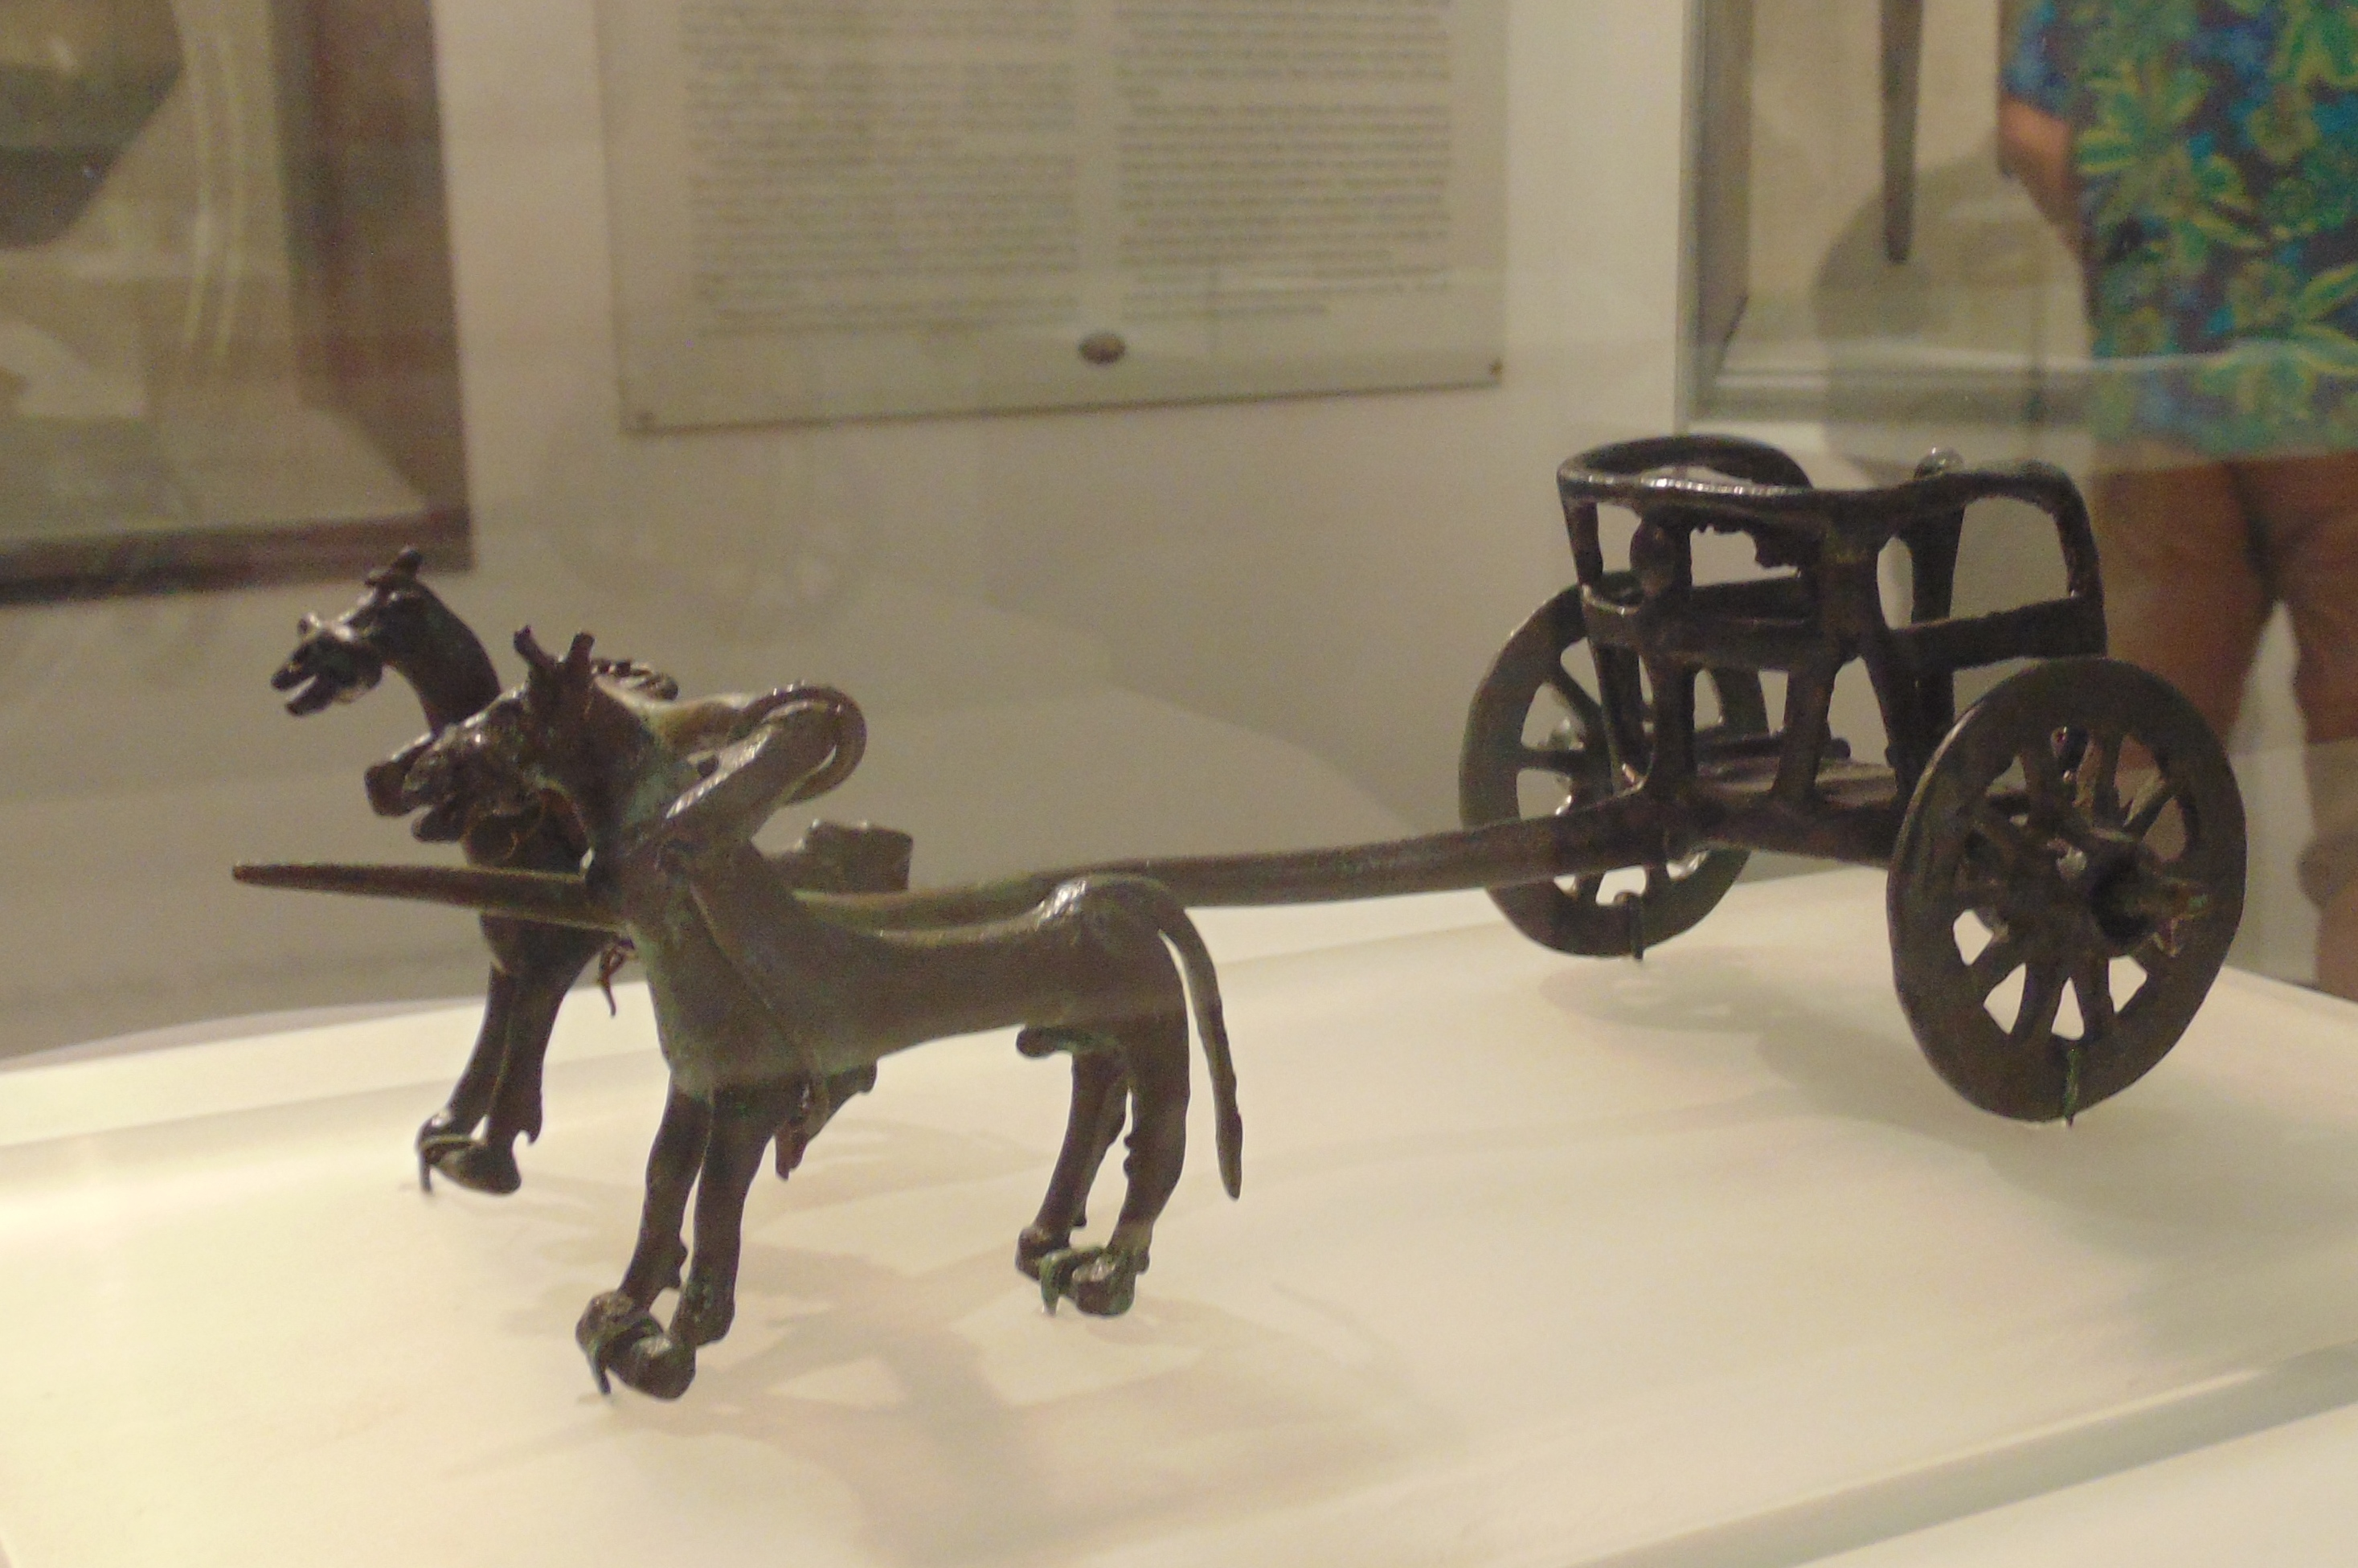 https://upload.wikimedia.org/wikipedia/commons/8/82/Sighnaghi_Museum._Early_iron_age_chariot_model_from_Kakheti_02.jpg